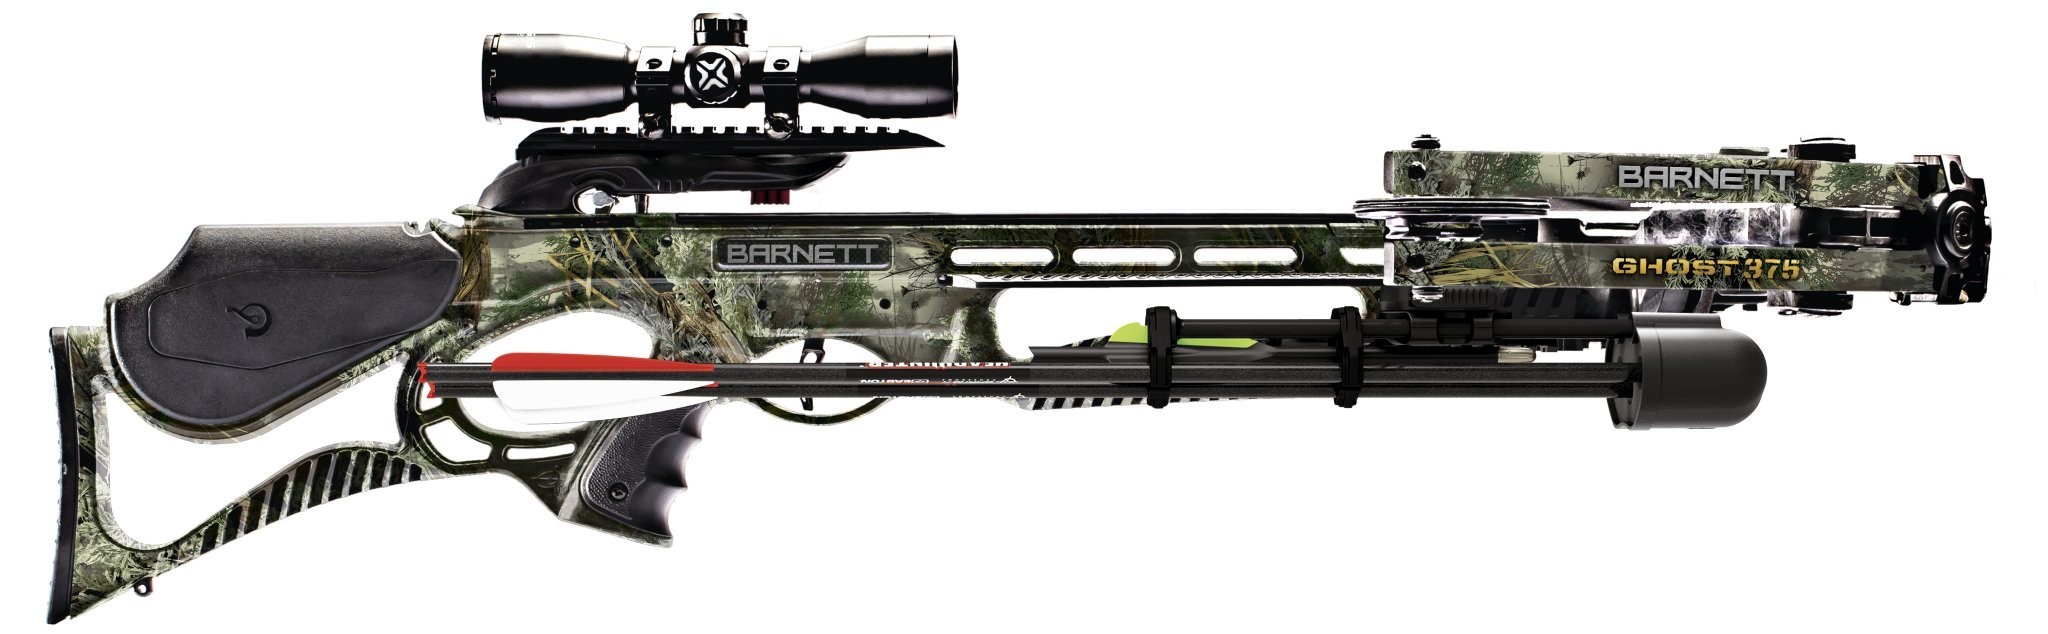 Barnett Ghost 375 Crossbow, Realtree Max 1 Camo by Barnett